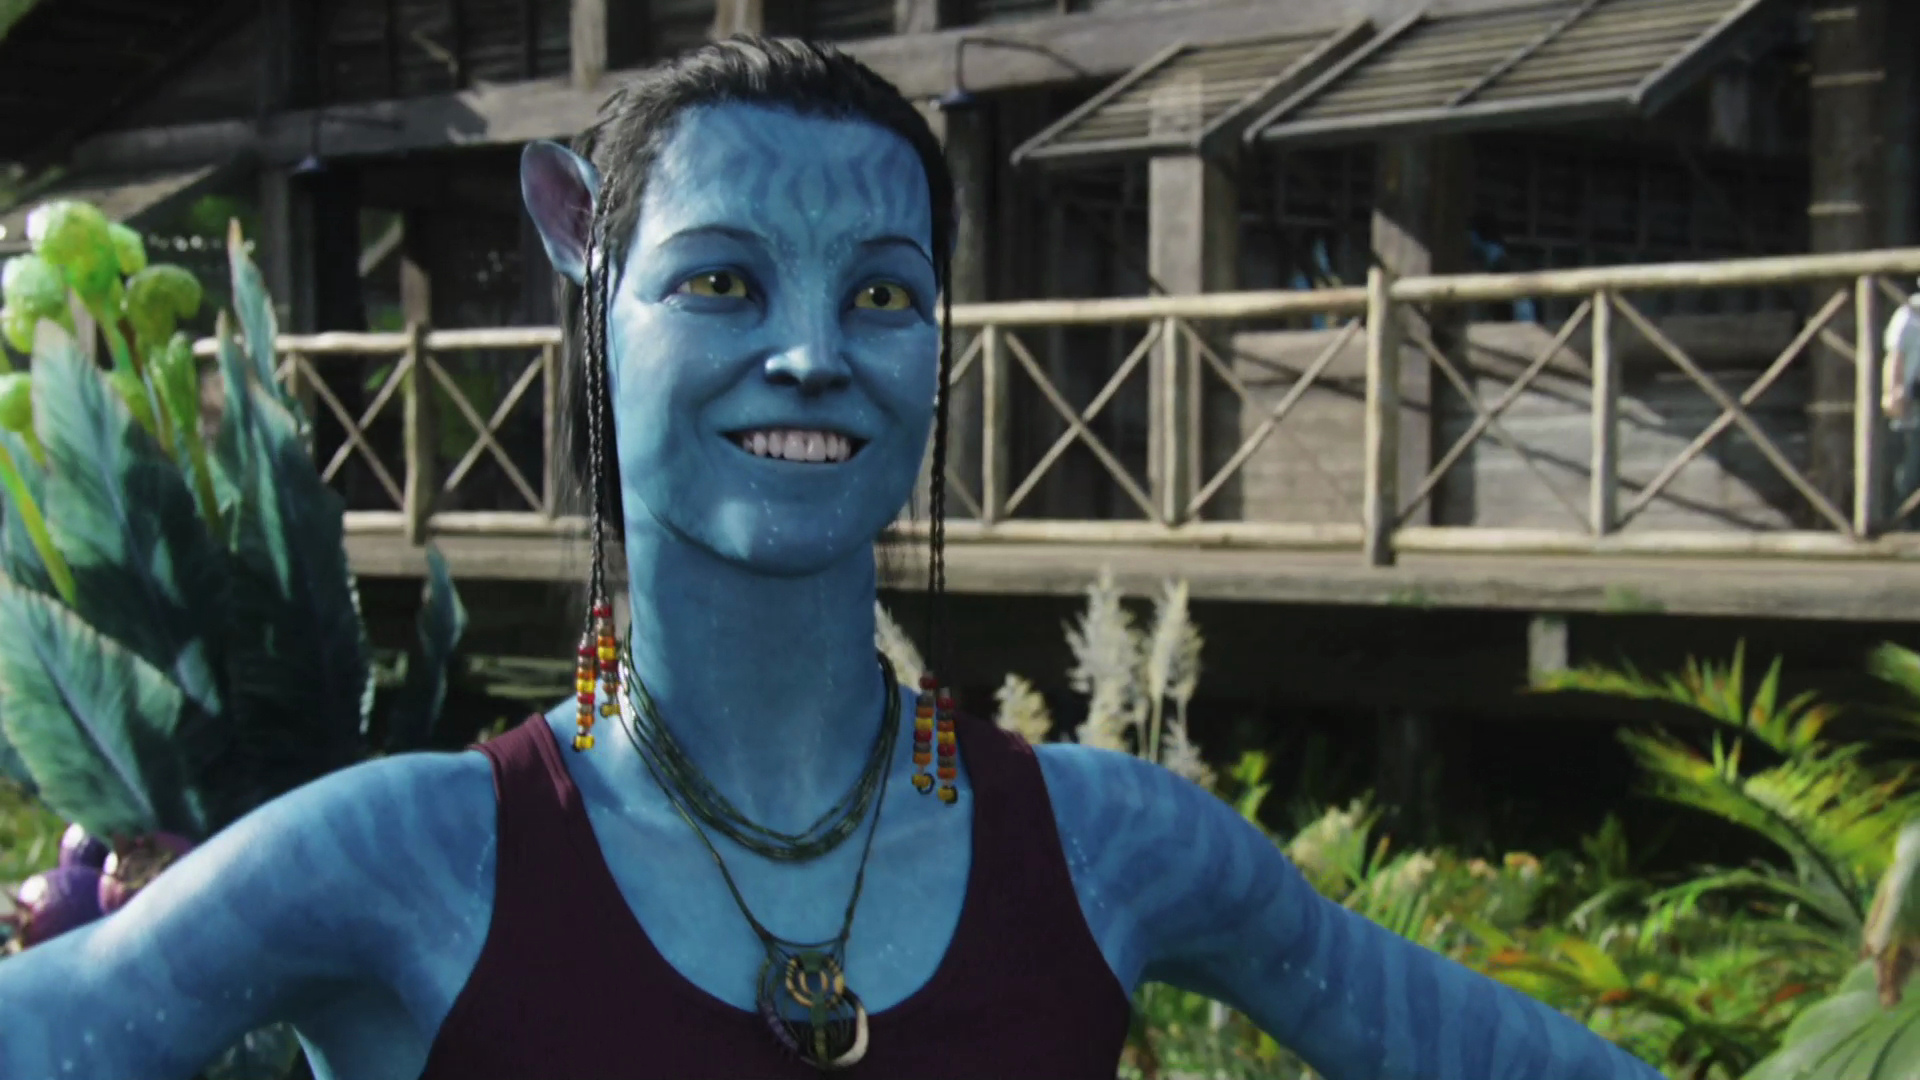 First Look at Sigourney Weaver on the Set of Avatar 2